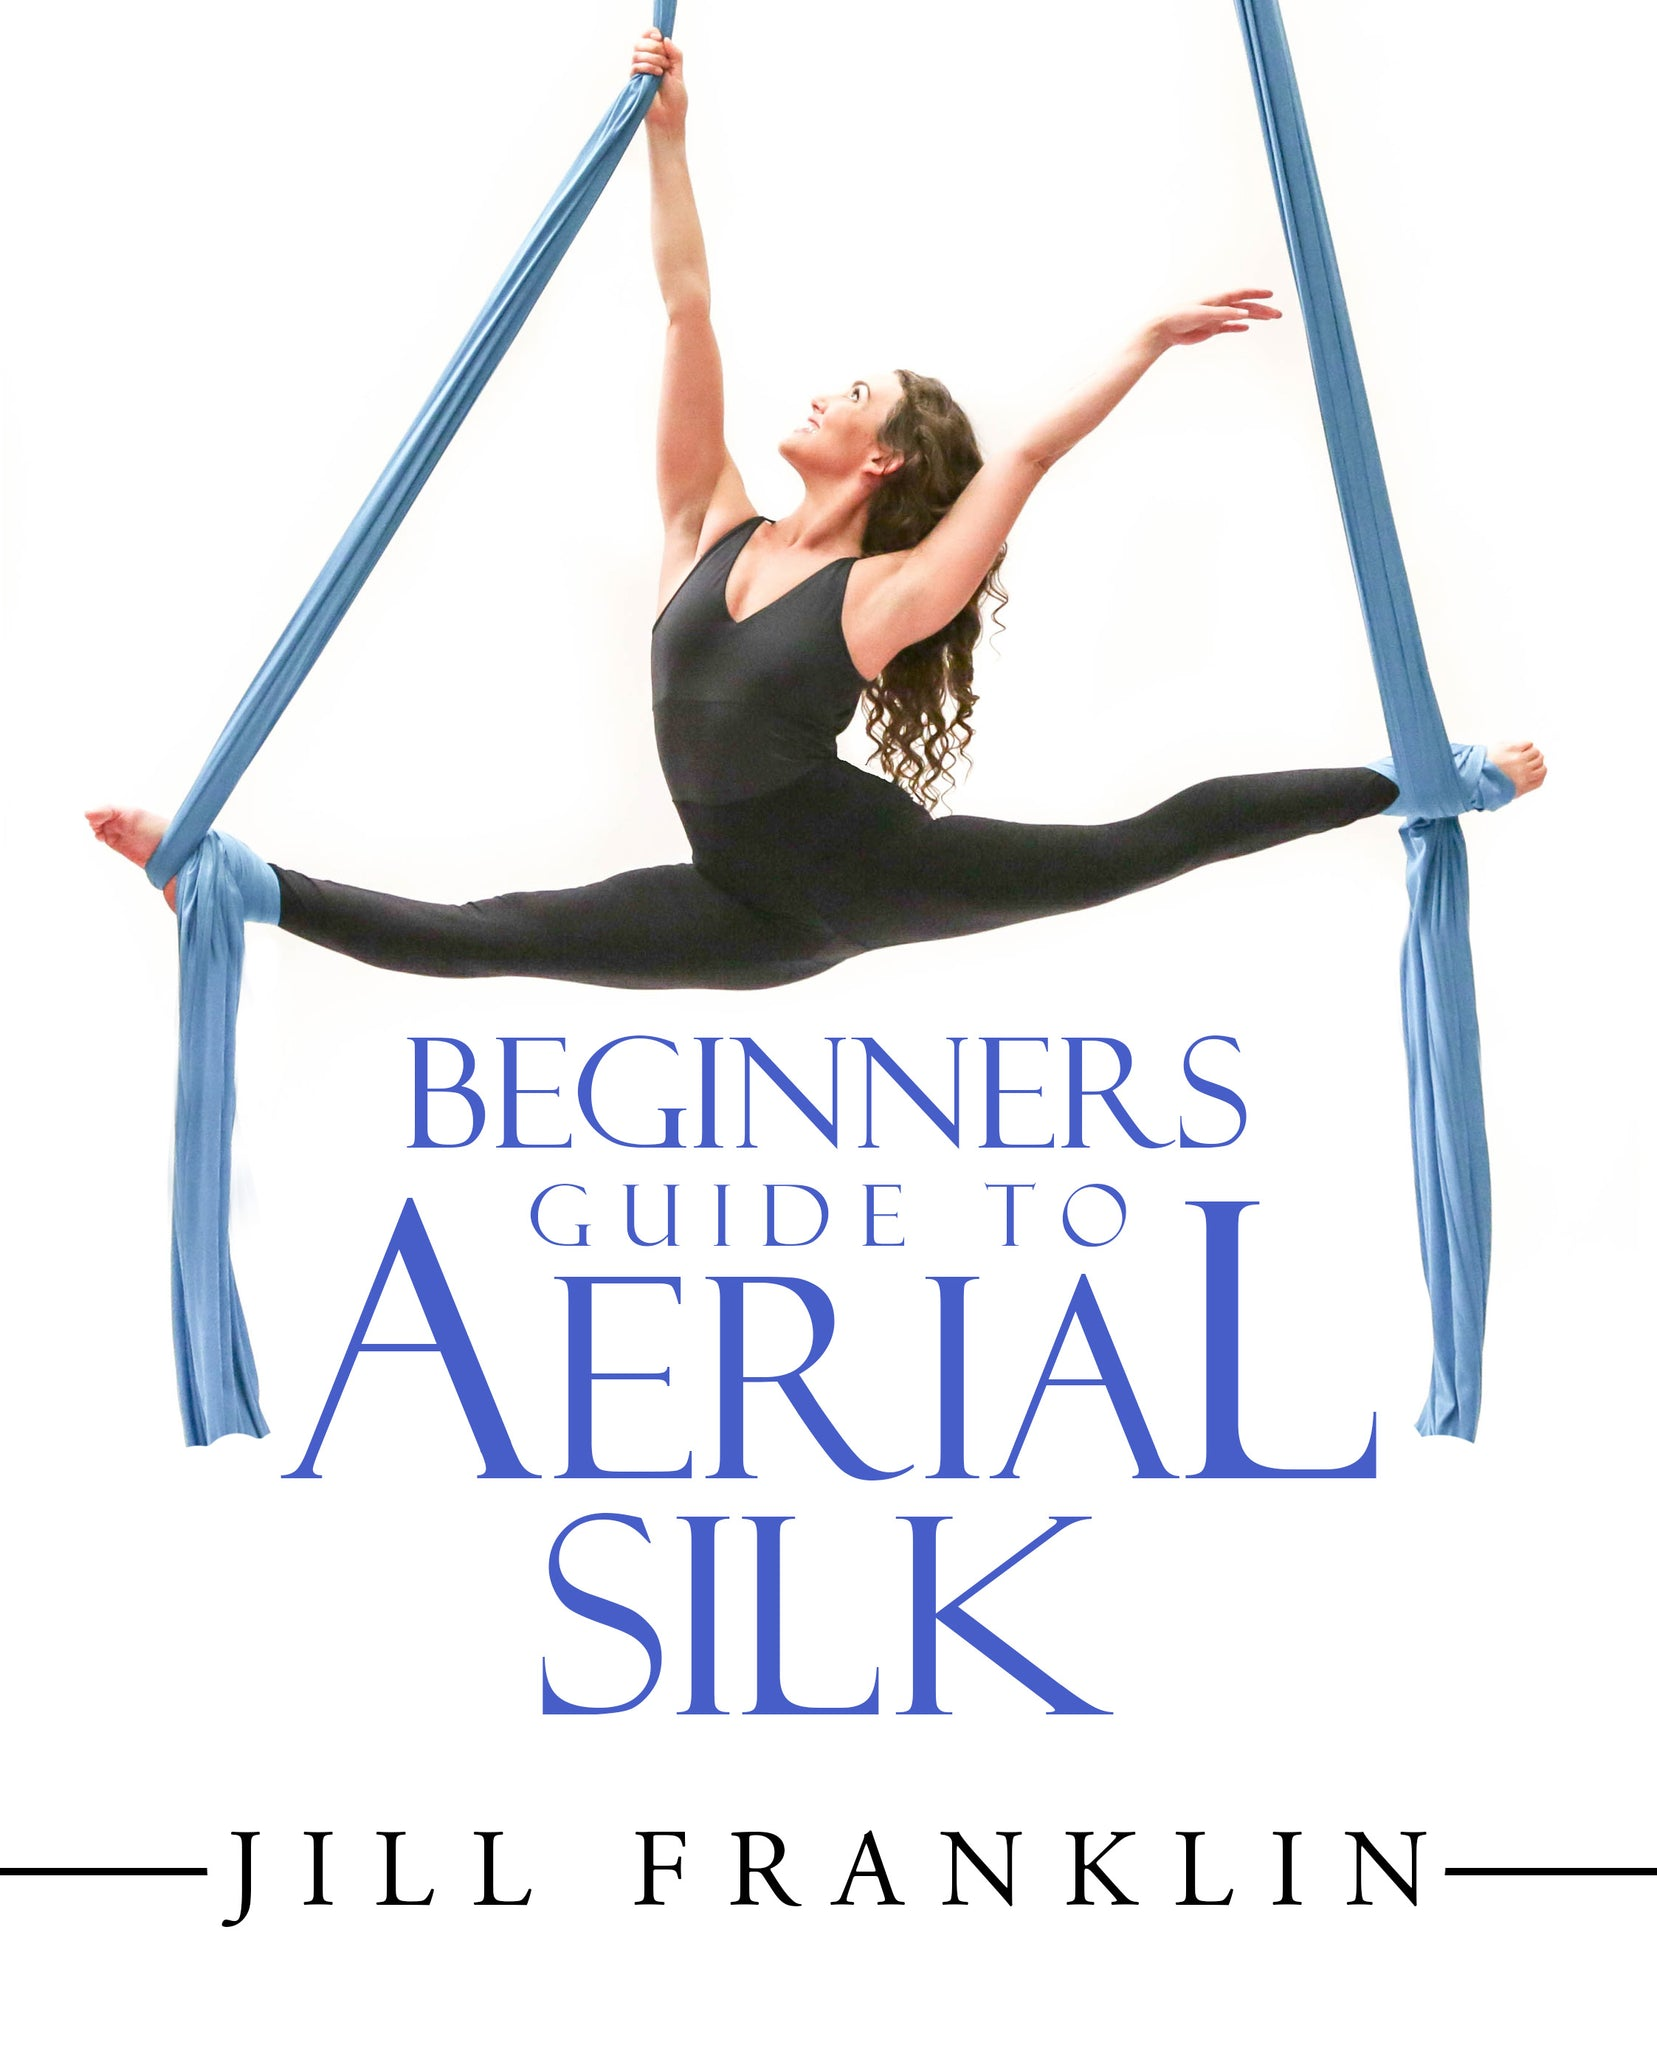 Beginners Guide to Aerial Silk - Digital Download